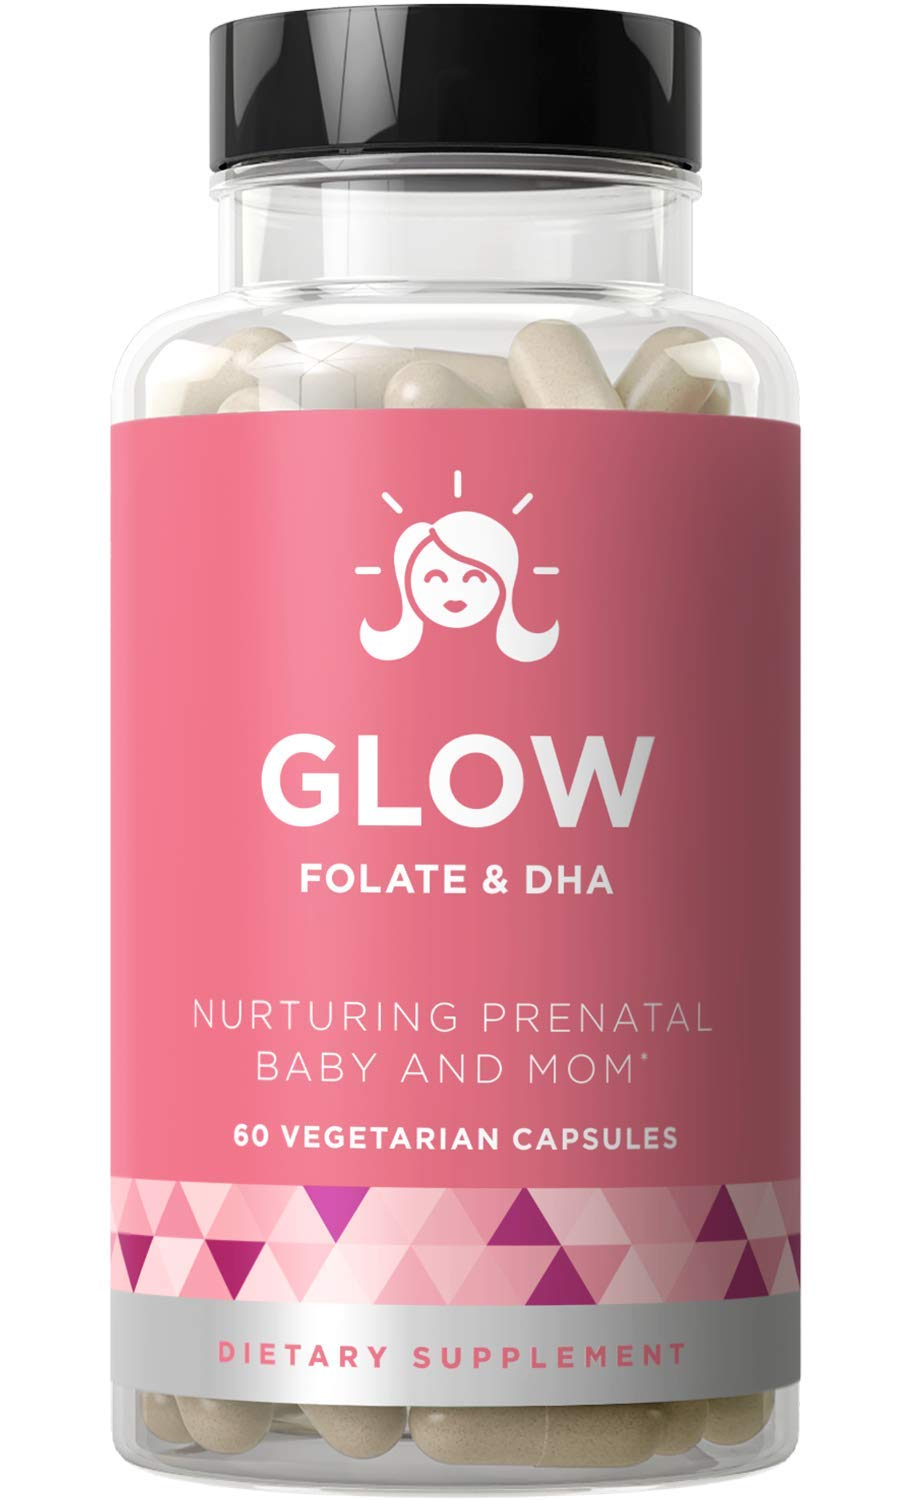 Glow Prenatal Vitamins Folate DHA Nurturing Pregnancy Multivitamin for Healthy Baby and Mom Folic Acid, Ginger, Zinc, Iron 60 Mini Vegetarian Soft Capsules